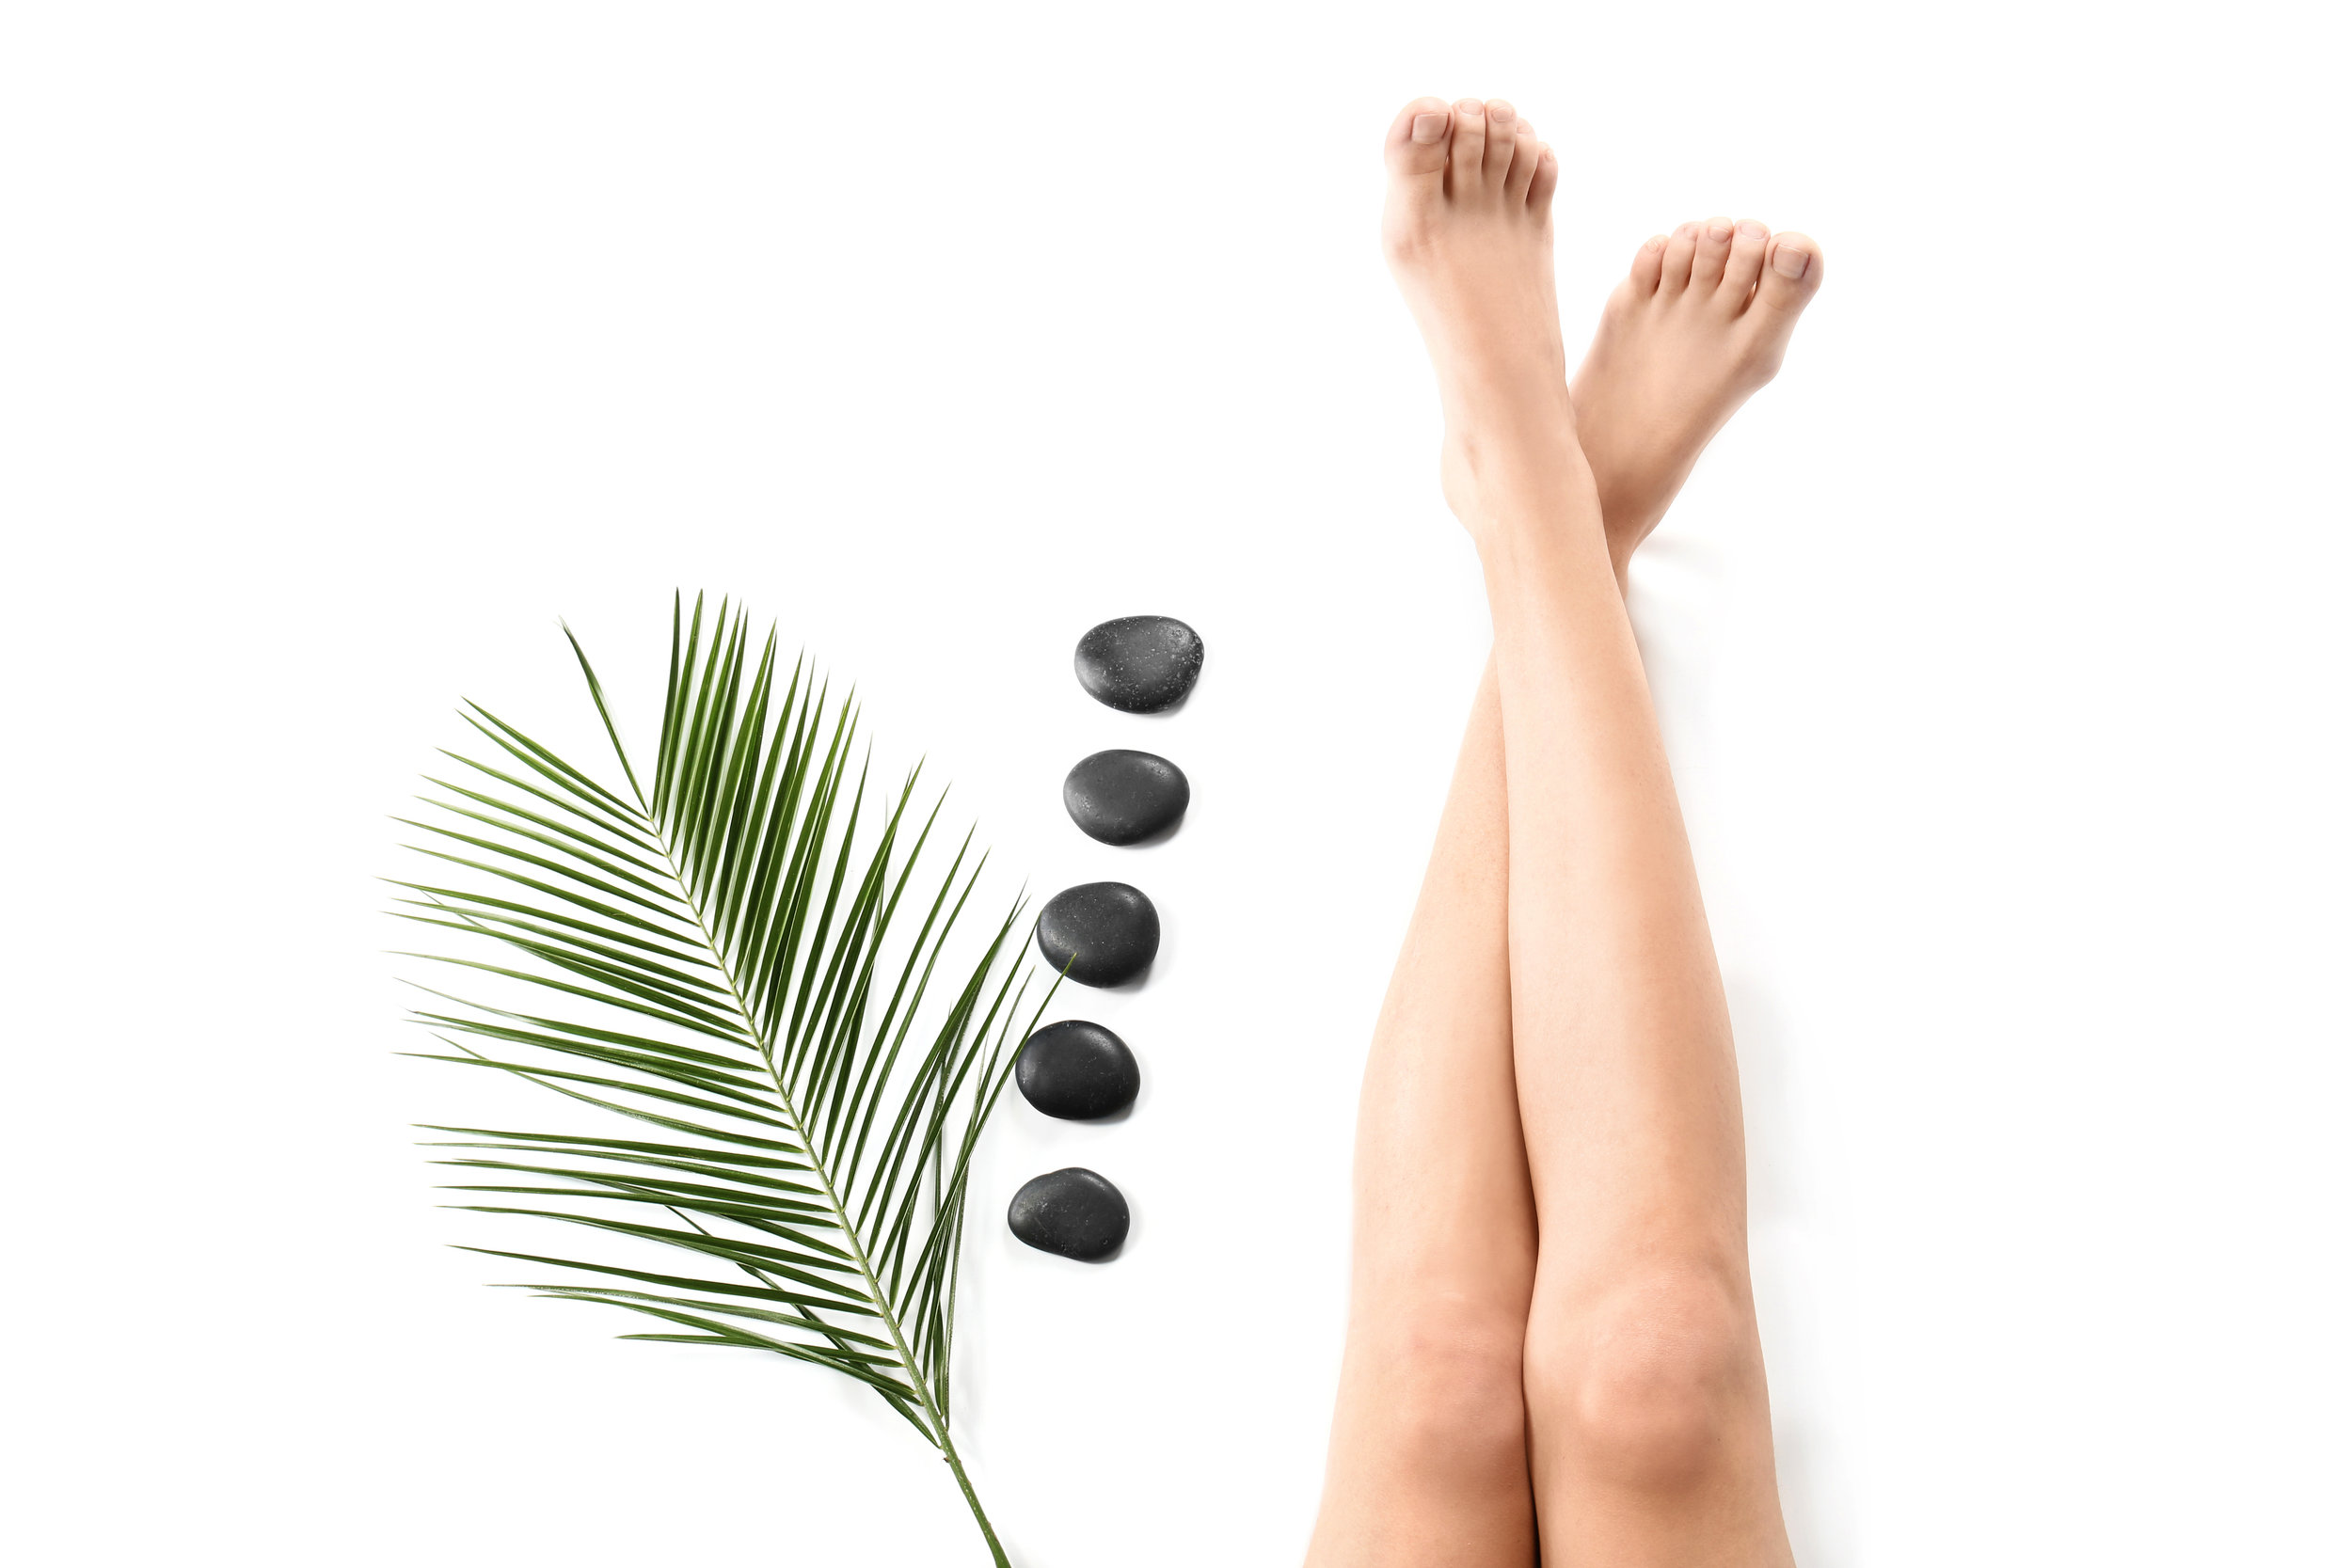 Hot Stone Pedicure - Warm up your feet and relax with our deep massaging hot stone pedicure for only $65Valid until March 31, 2019. Cannot be combined with other offers. Booking recommended.